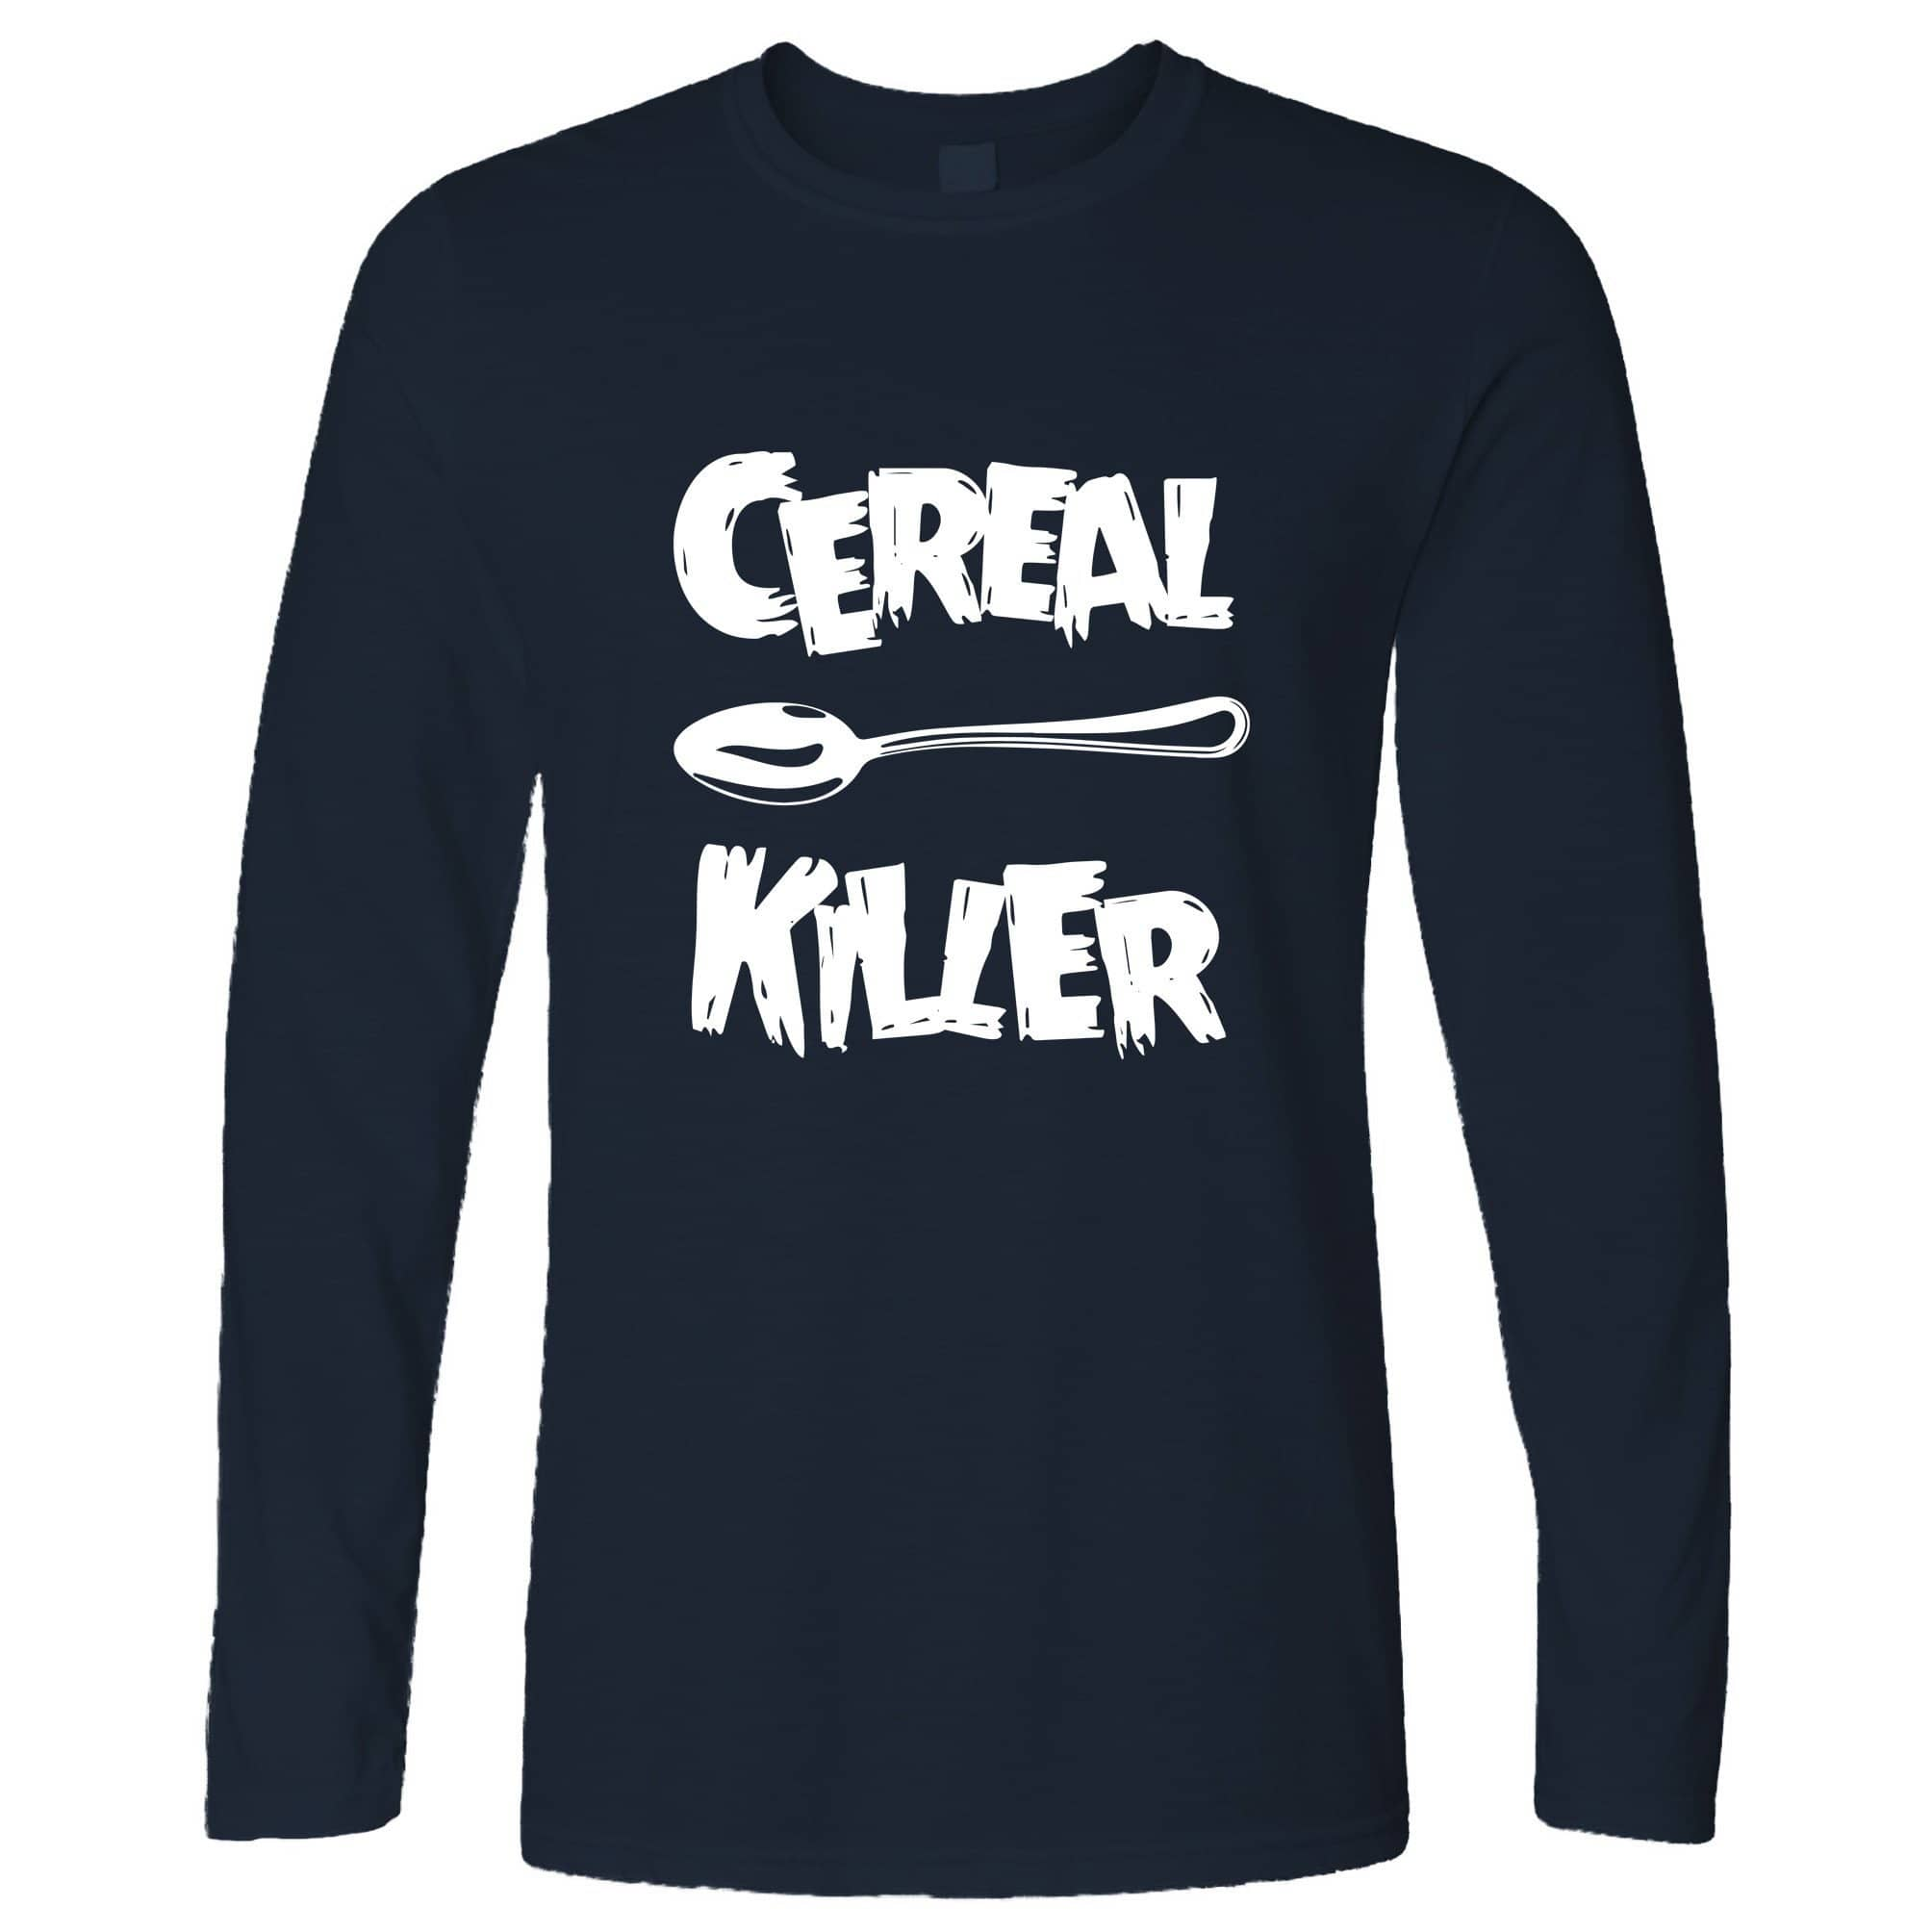 Novelty Breakfast Long Sleeve Spoon Cereal Killer Joke T-Shirt